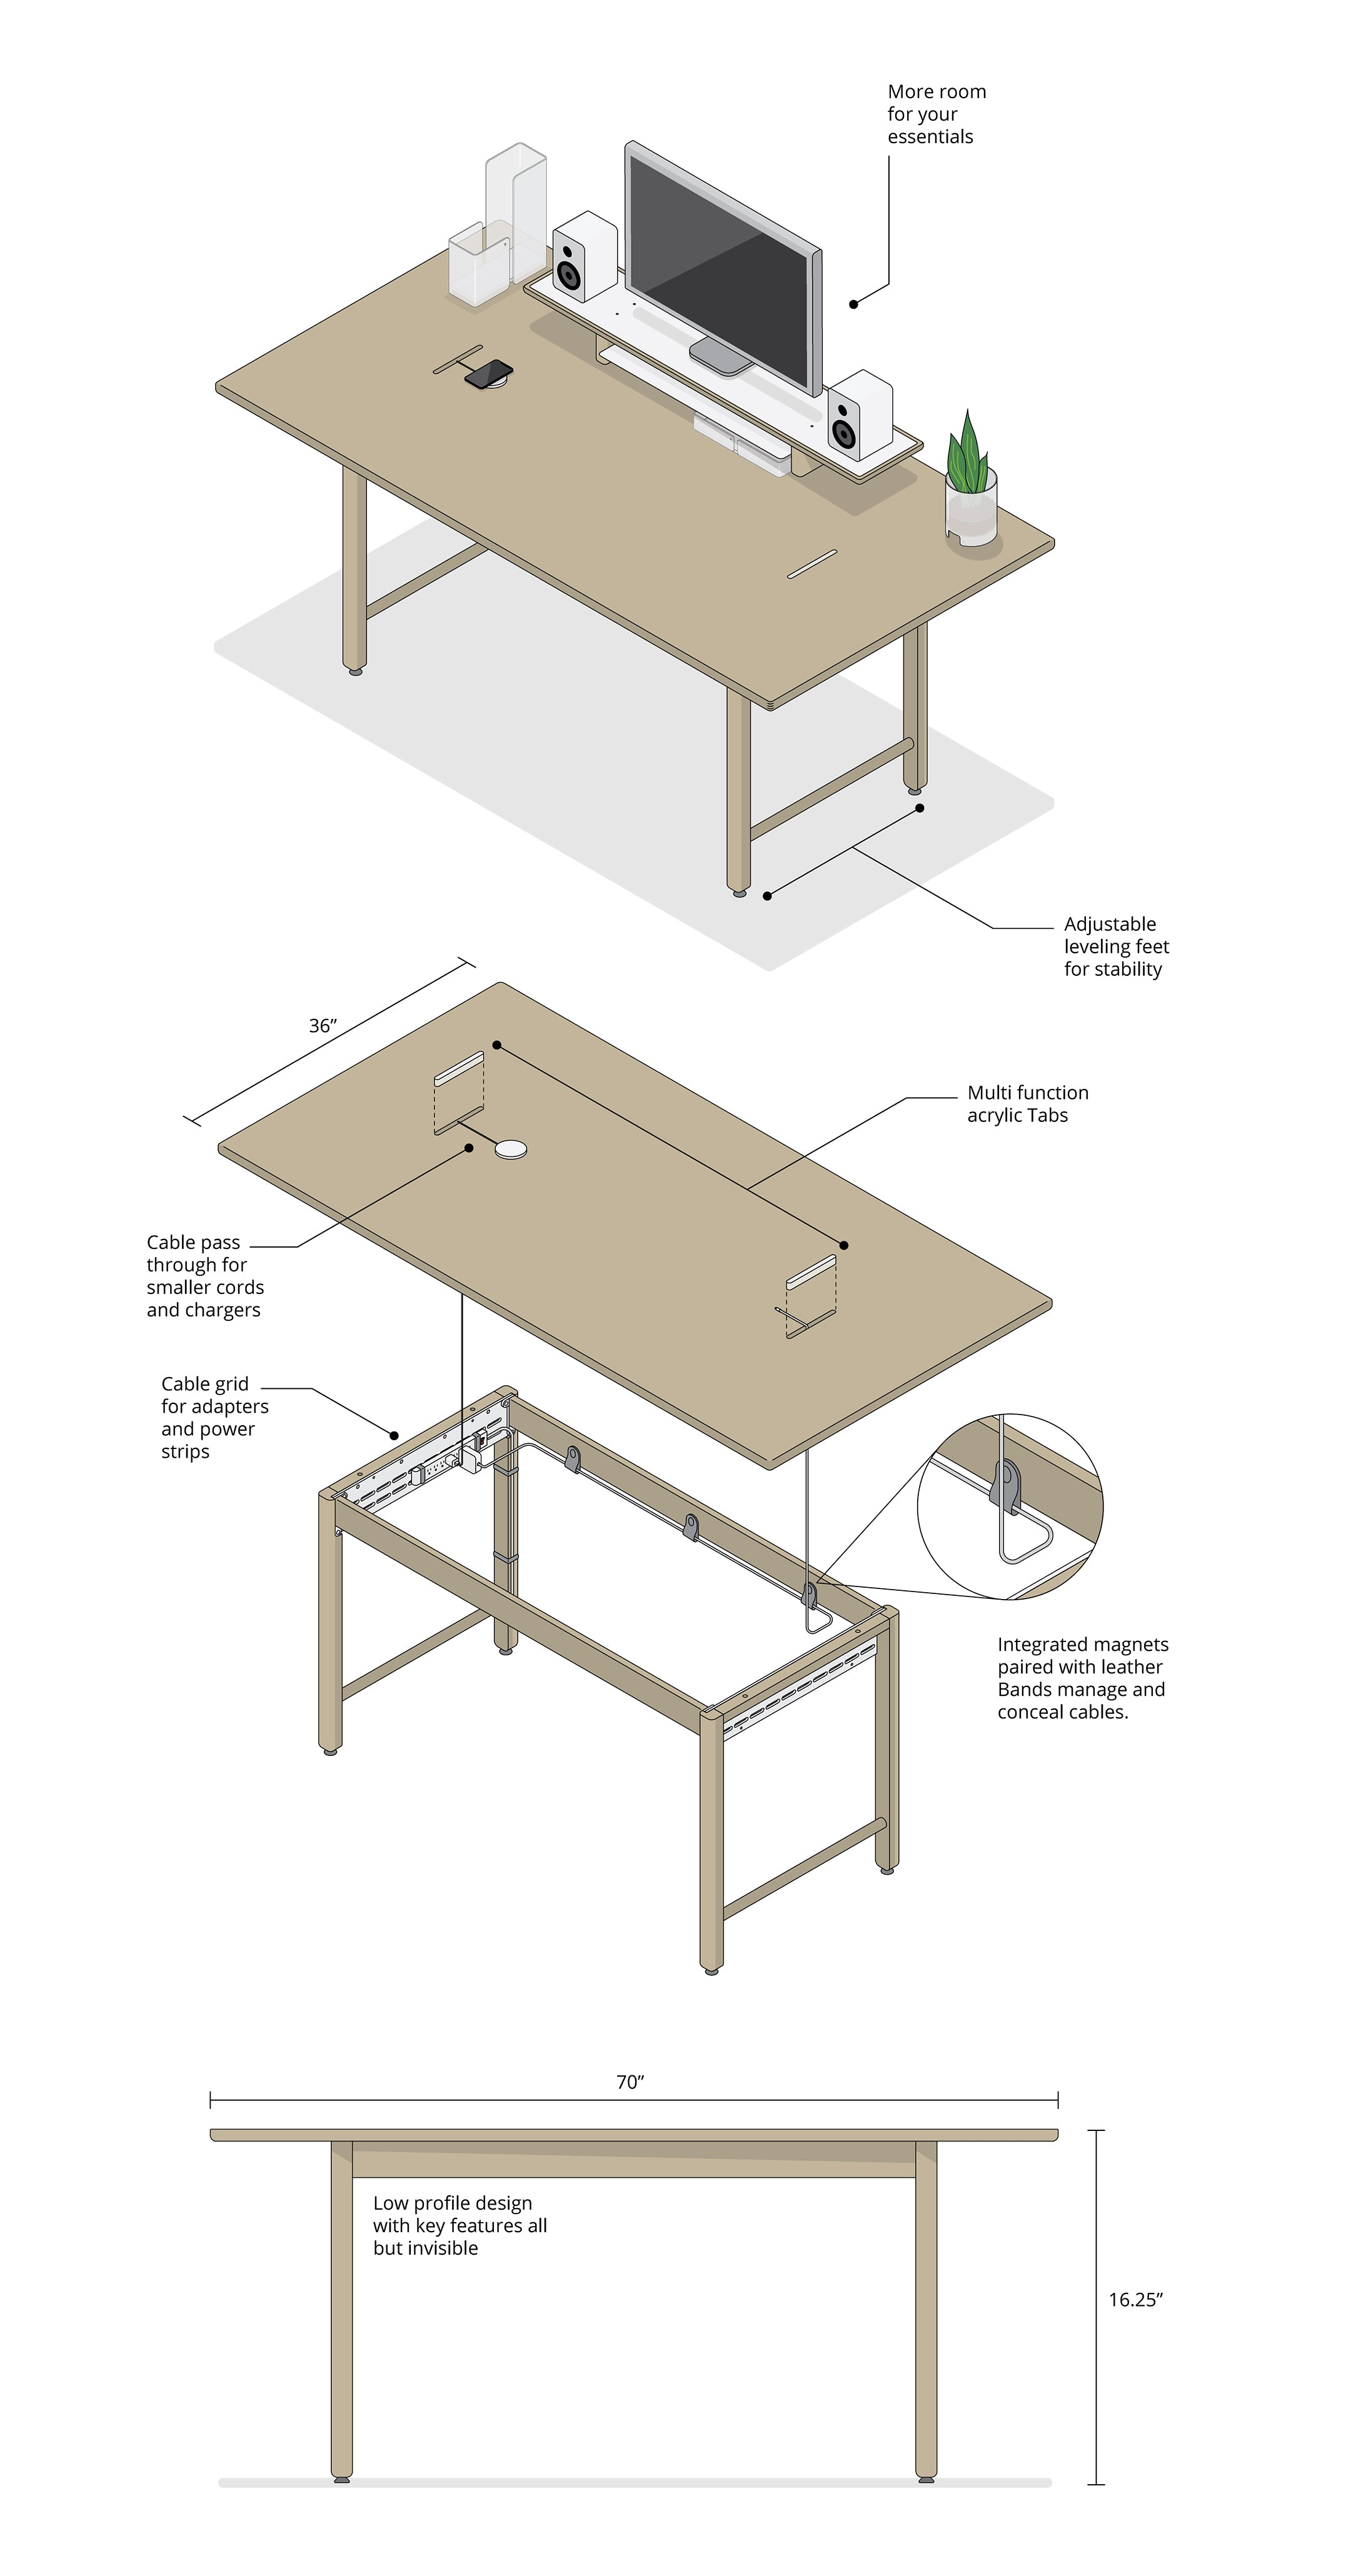 Modern table for working, eating or meeting